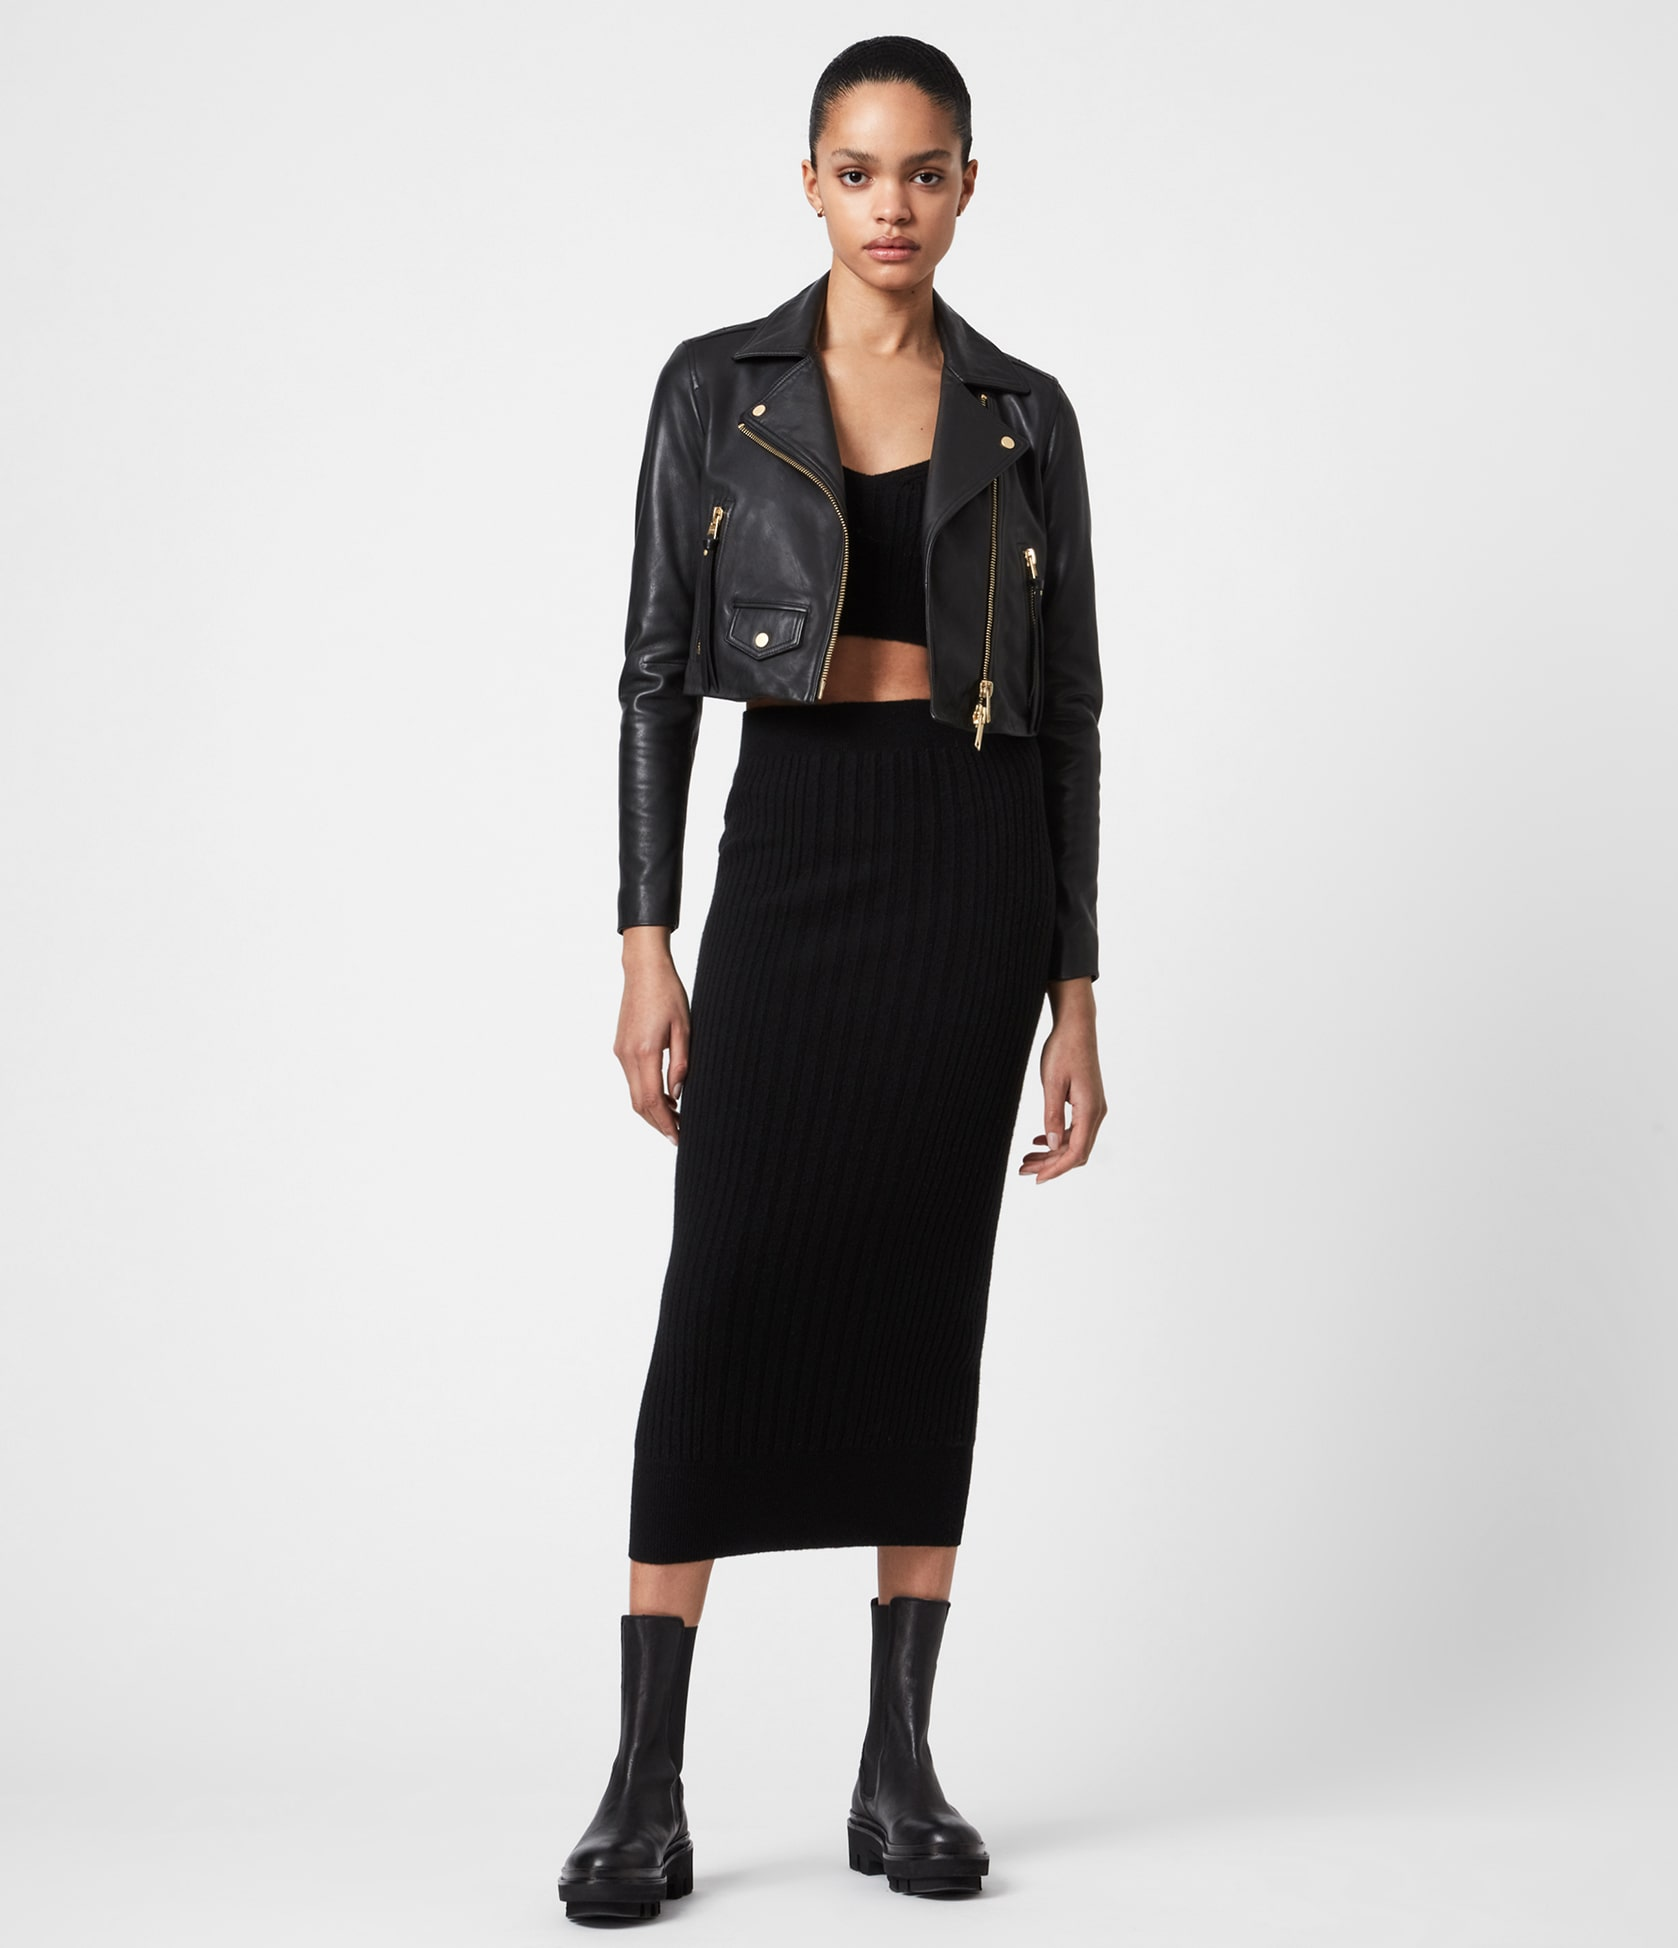 Women's Elora Leather Jacket - Outfit Front View